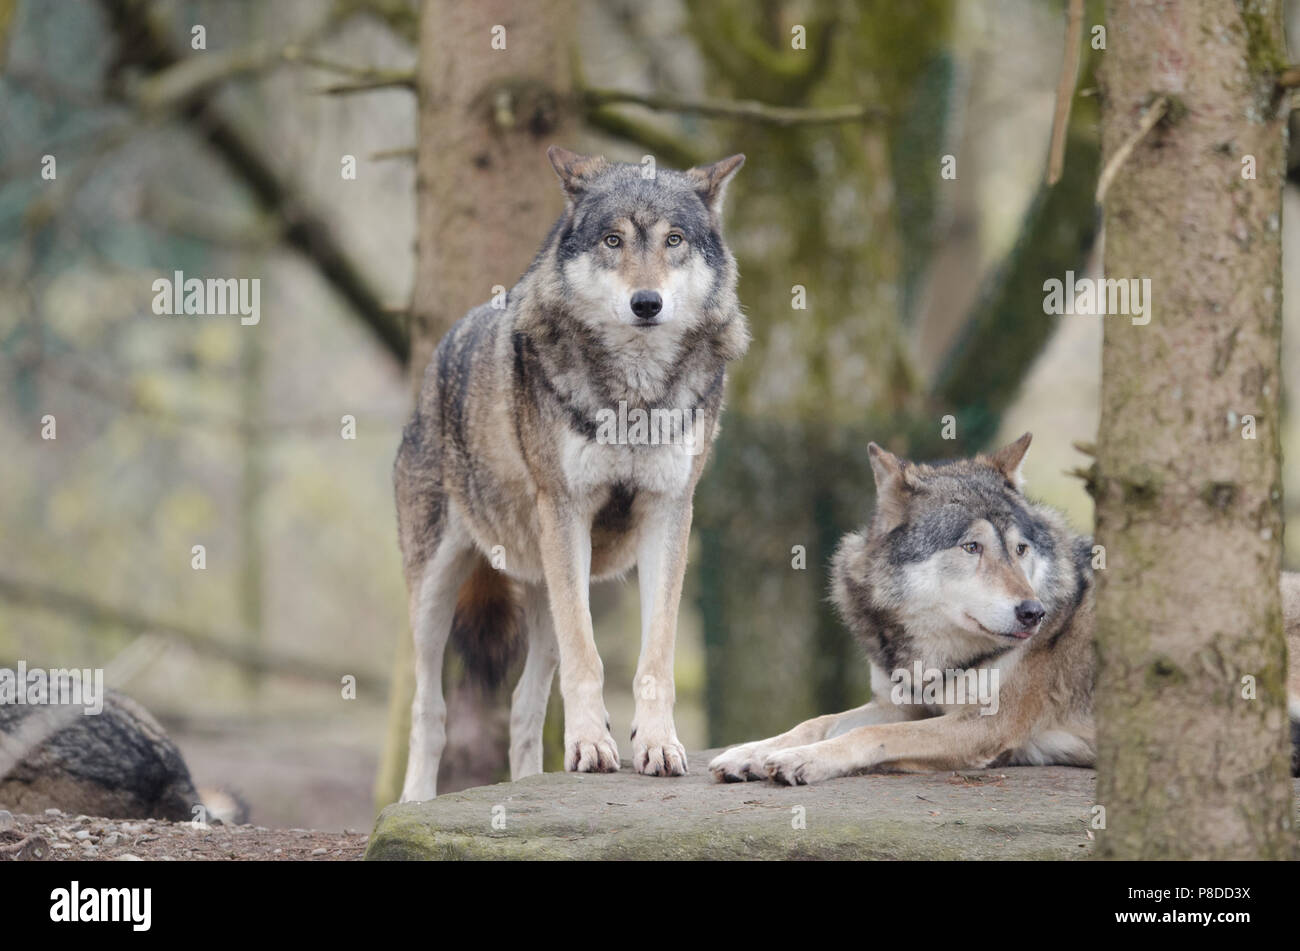 Wolf in the forest focused on prey - Stock Image